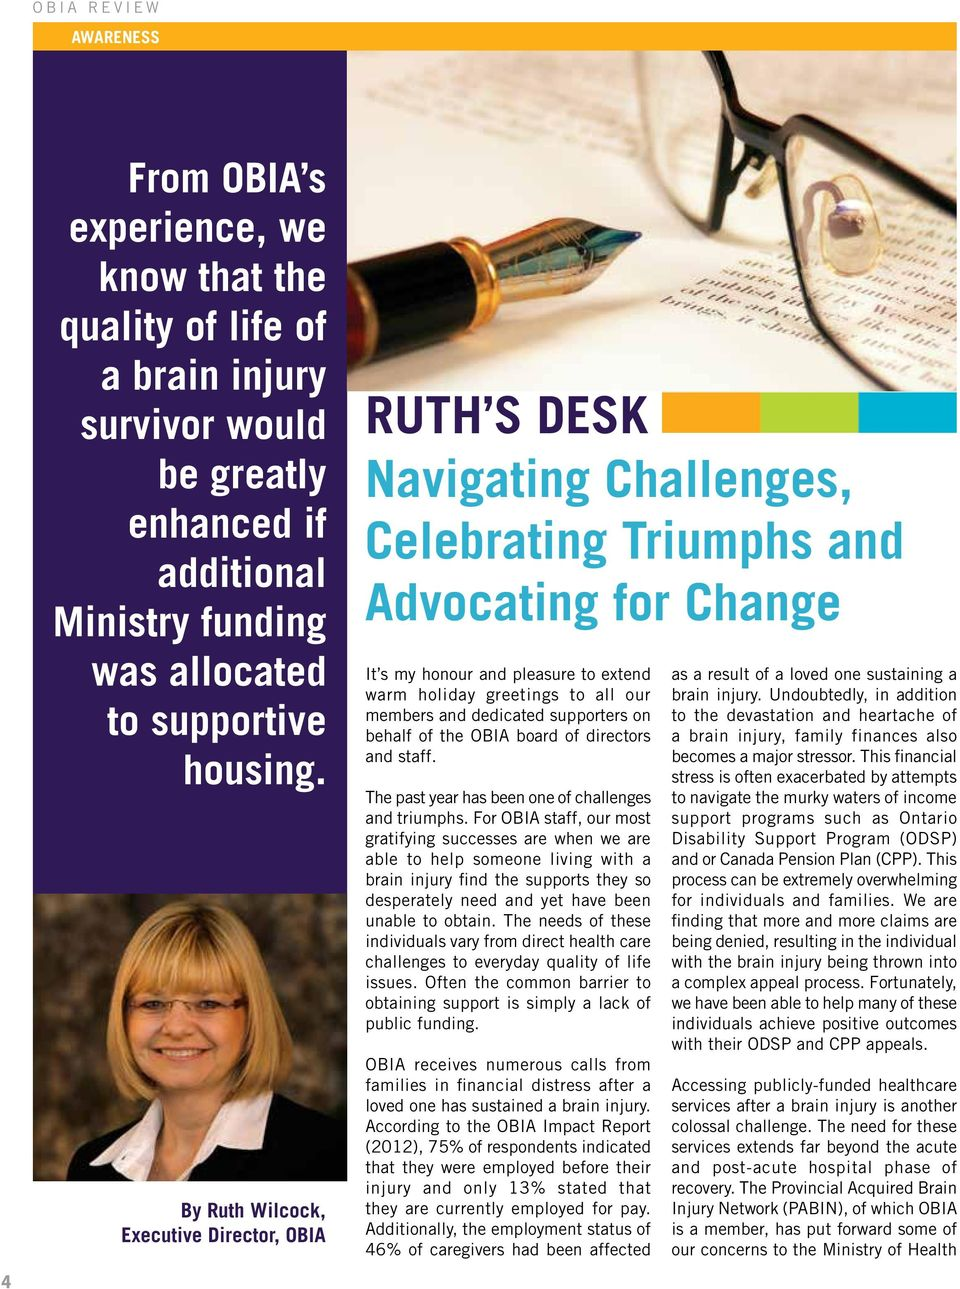 By Ruth Wilcock, Executive Director, OBIA RUTH S DESK Navigating Challenges, Celebrating Triumphs and Advocating for Change It s my honour and pleasure to extend warm holiday greetings to all our